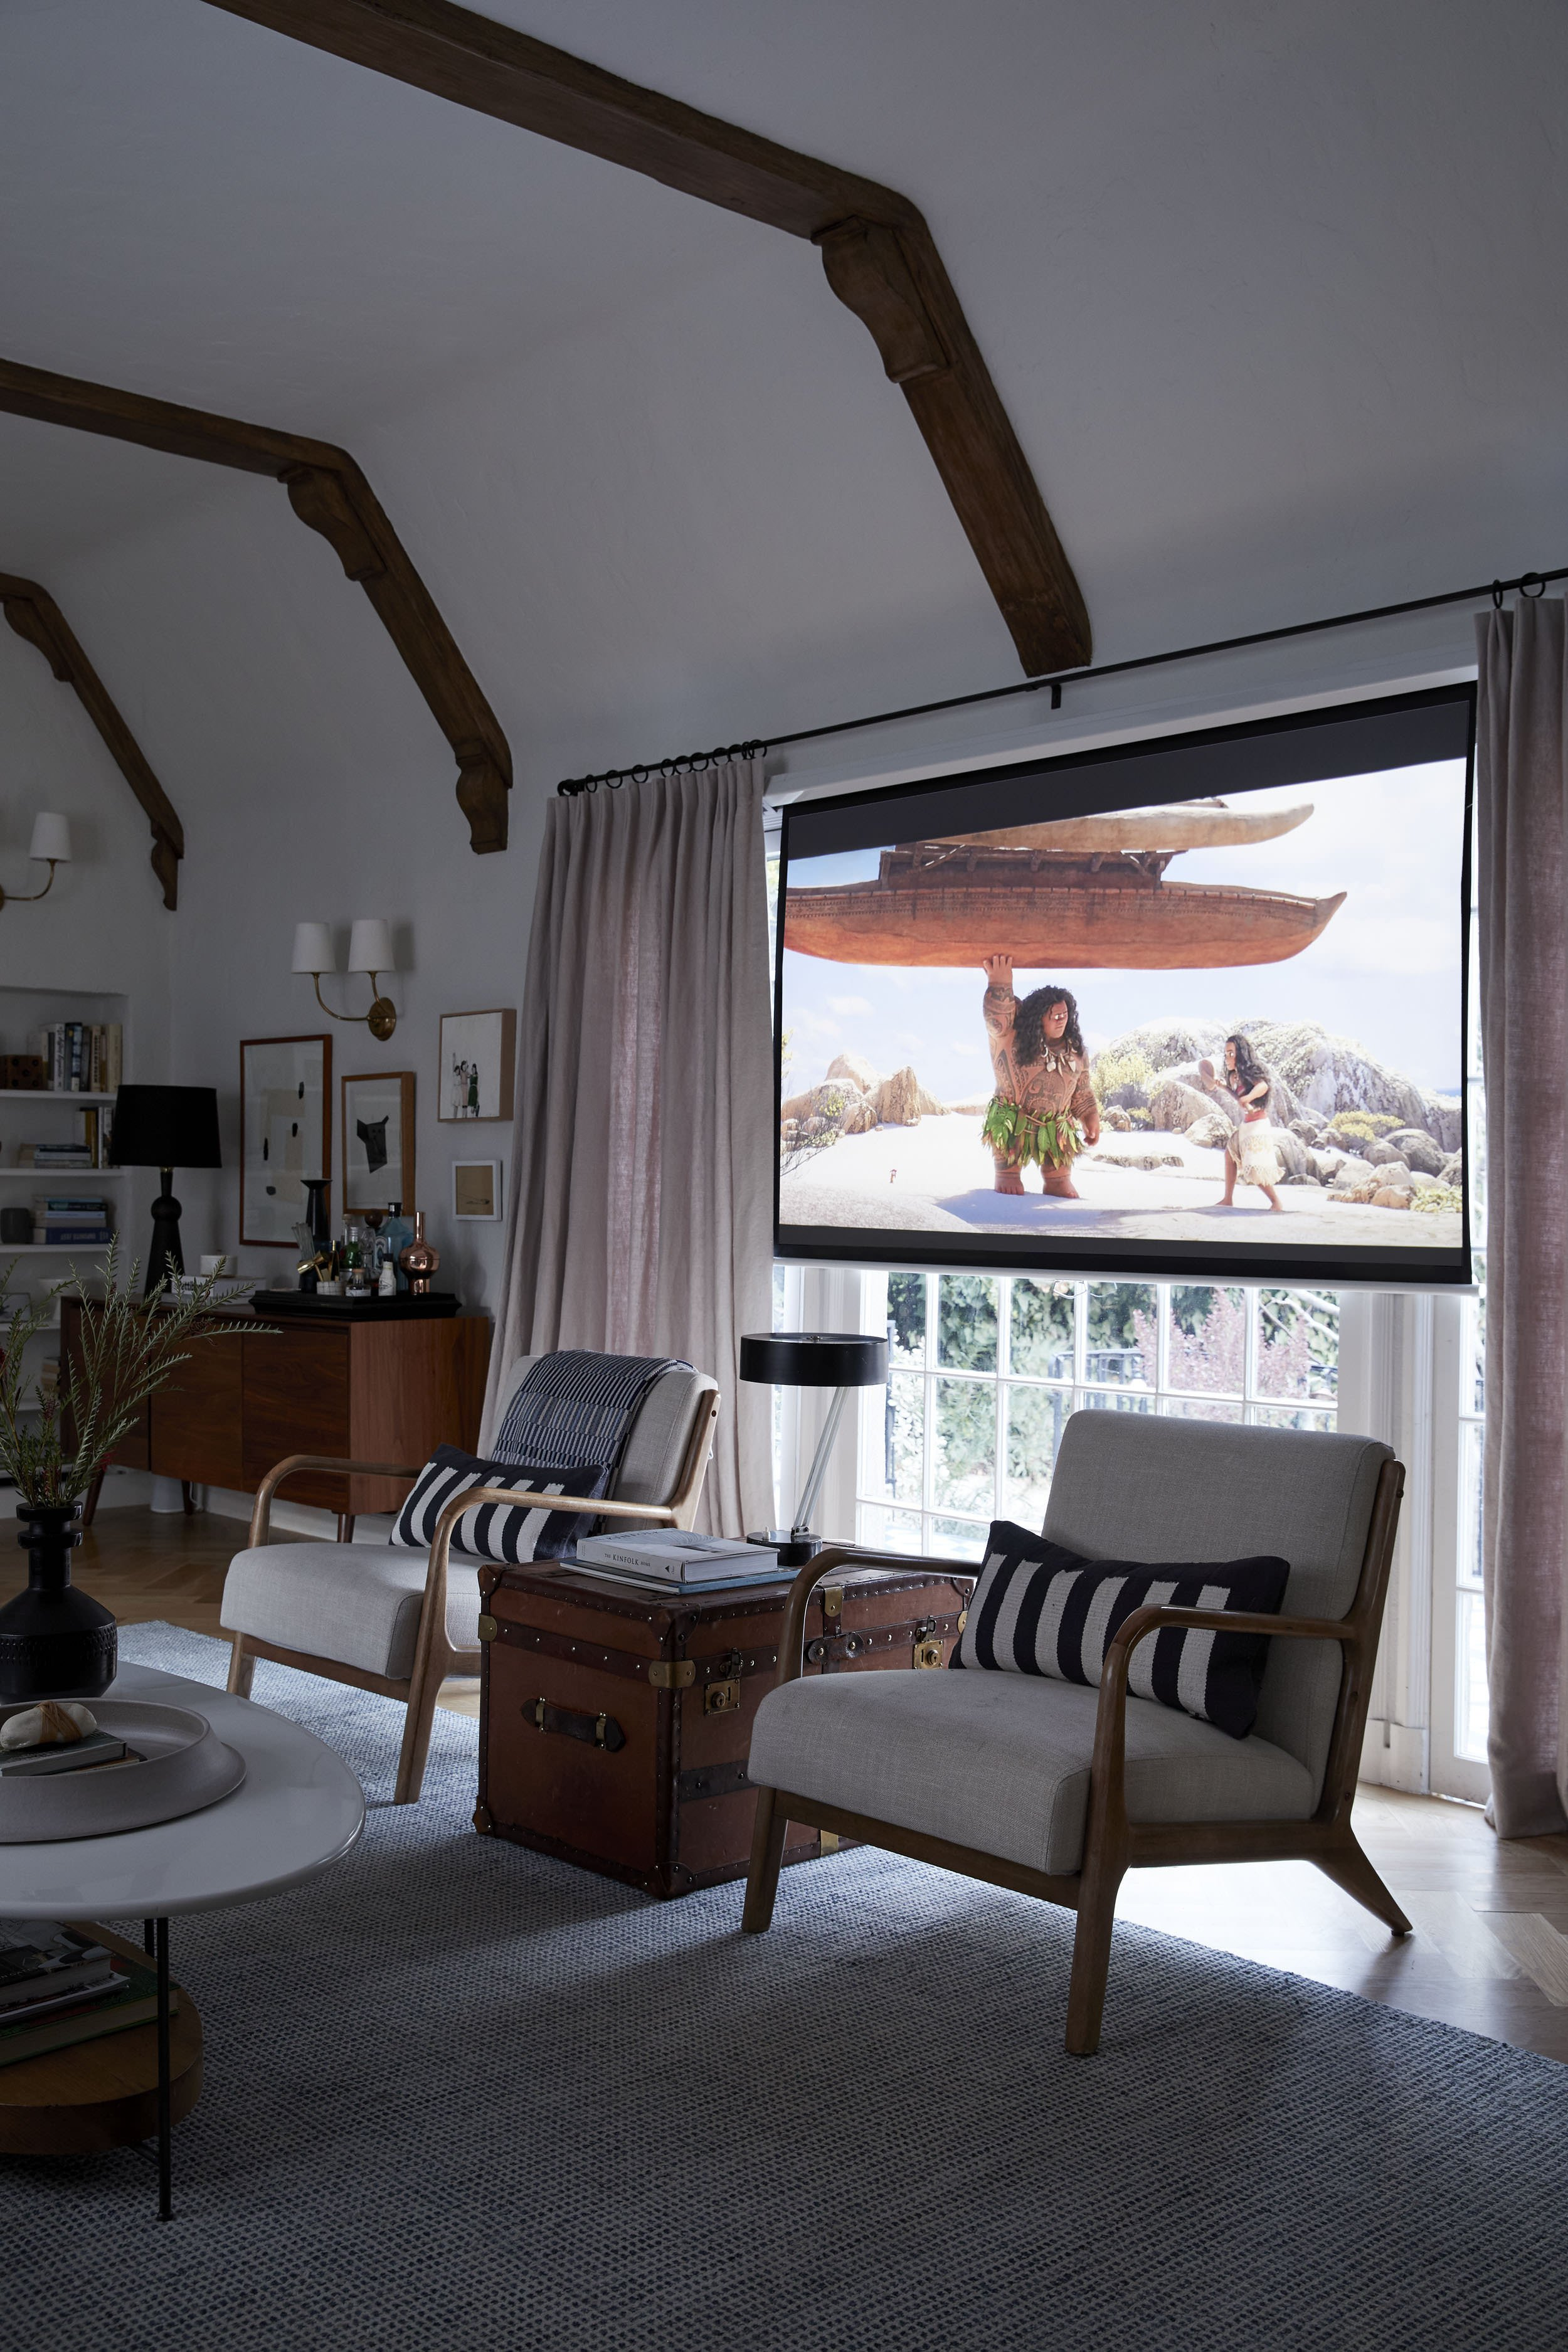 Comfortable Living Roomfor Movie Watching Our New Hidden Living Room Projector System Emily